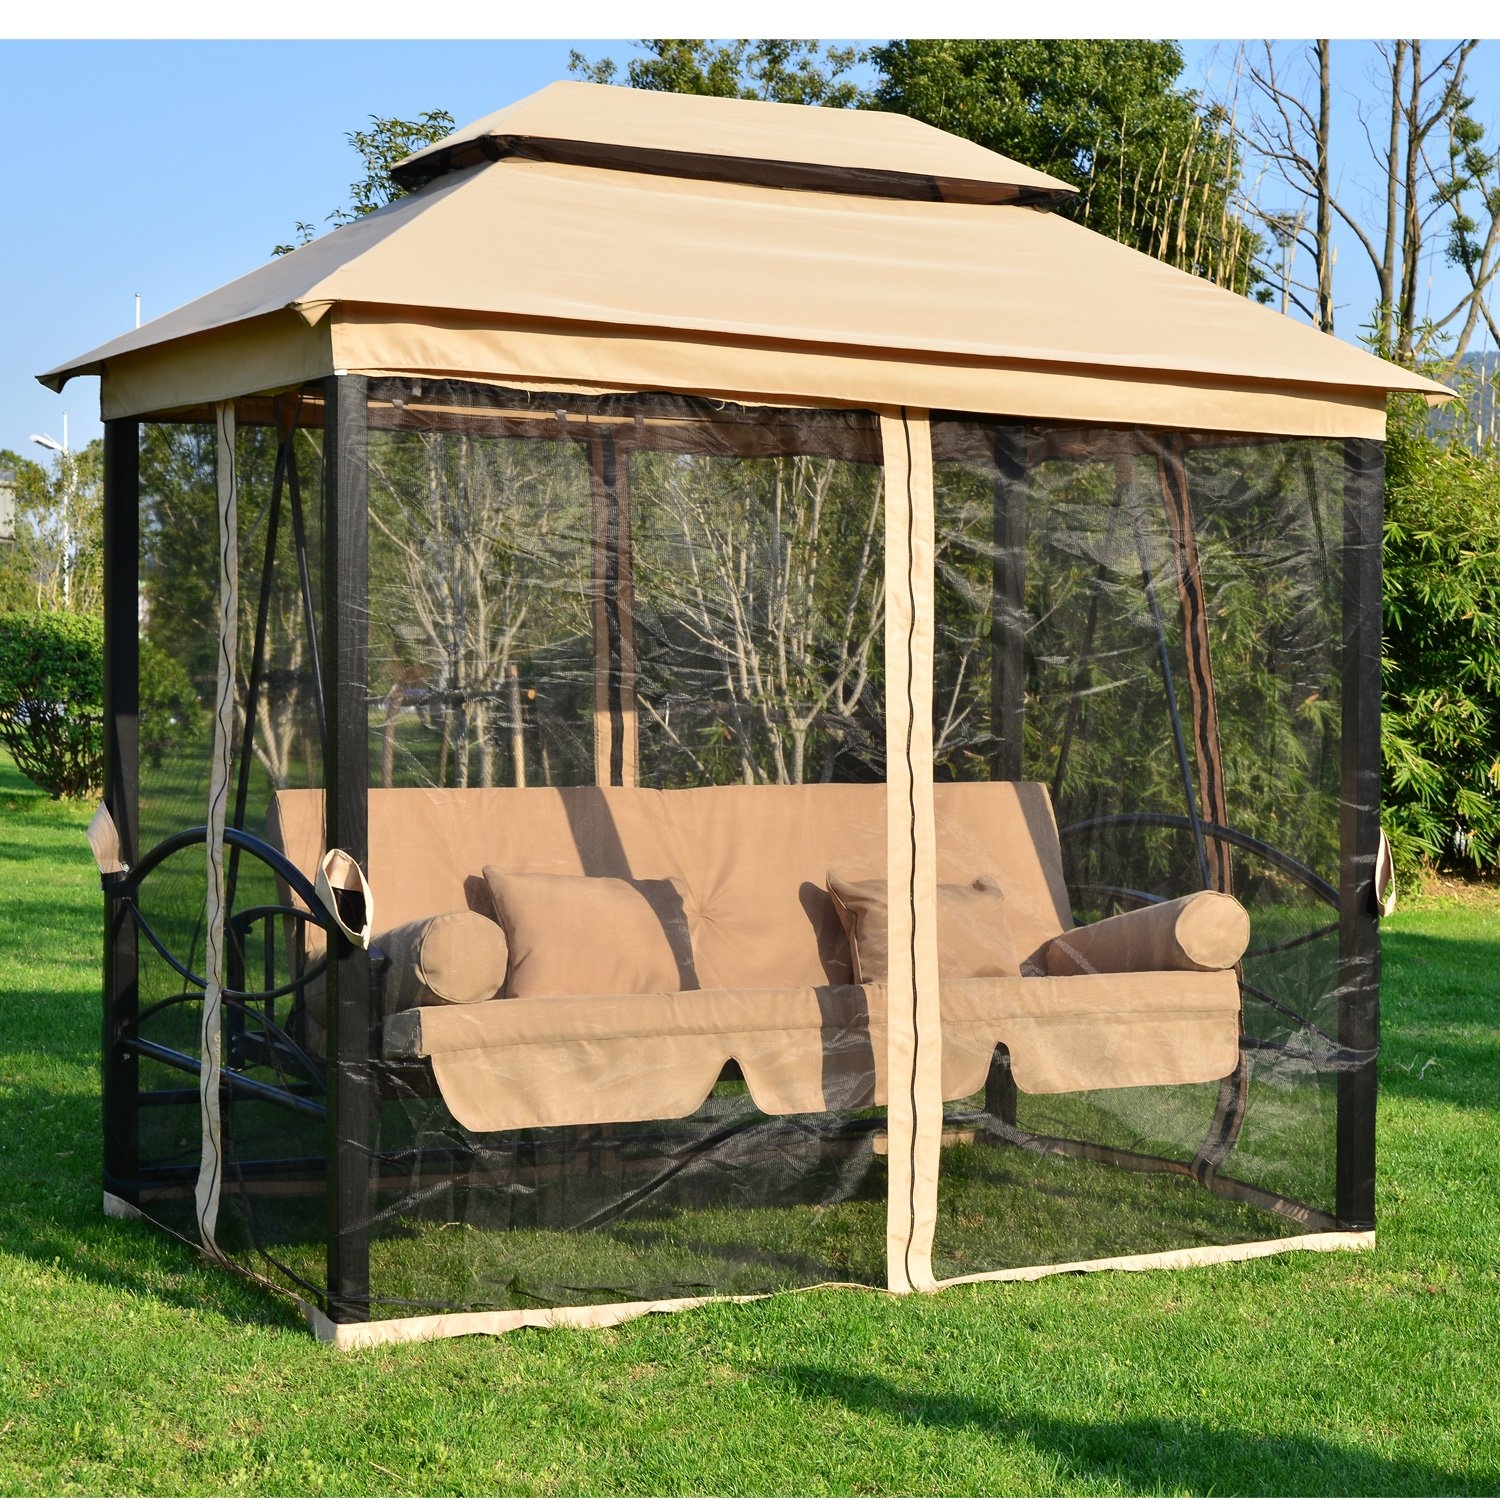 Outsunny Outdoor 3 Person Patio Daybed Canopy Gazebo Swing Chair